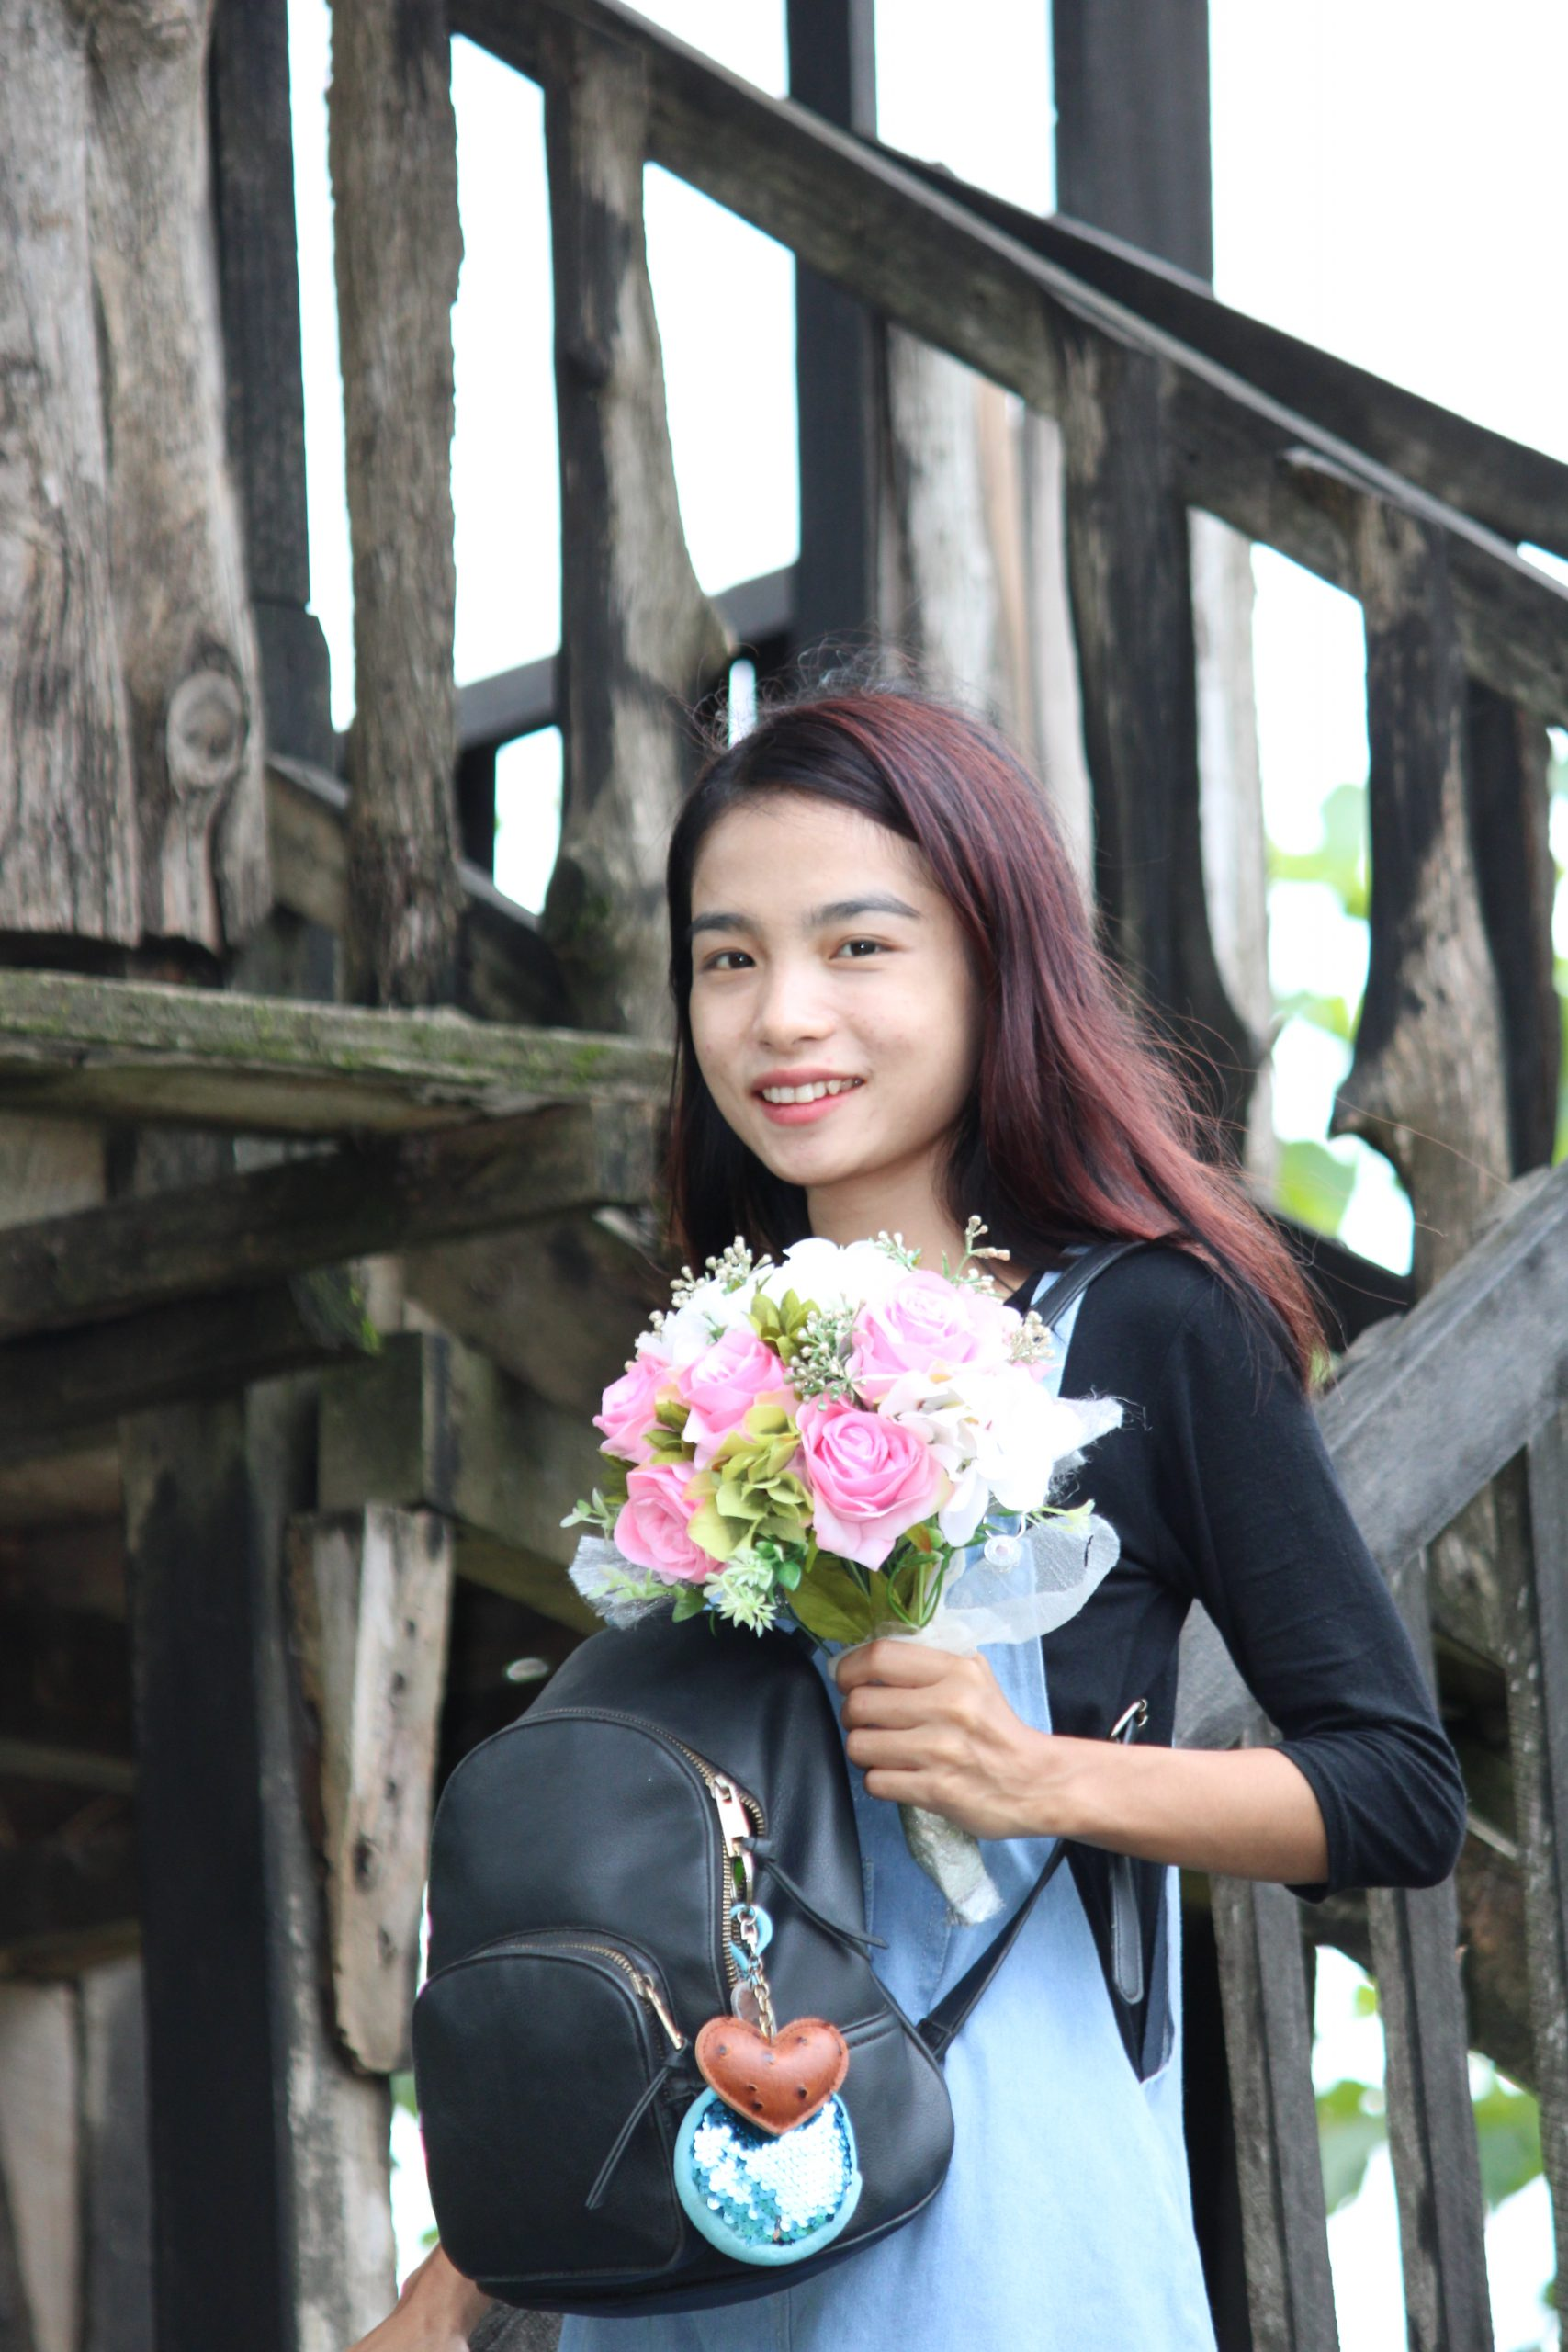 A girl with flower bouquet